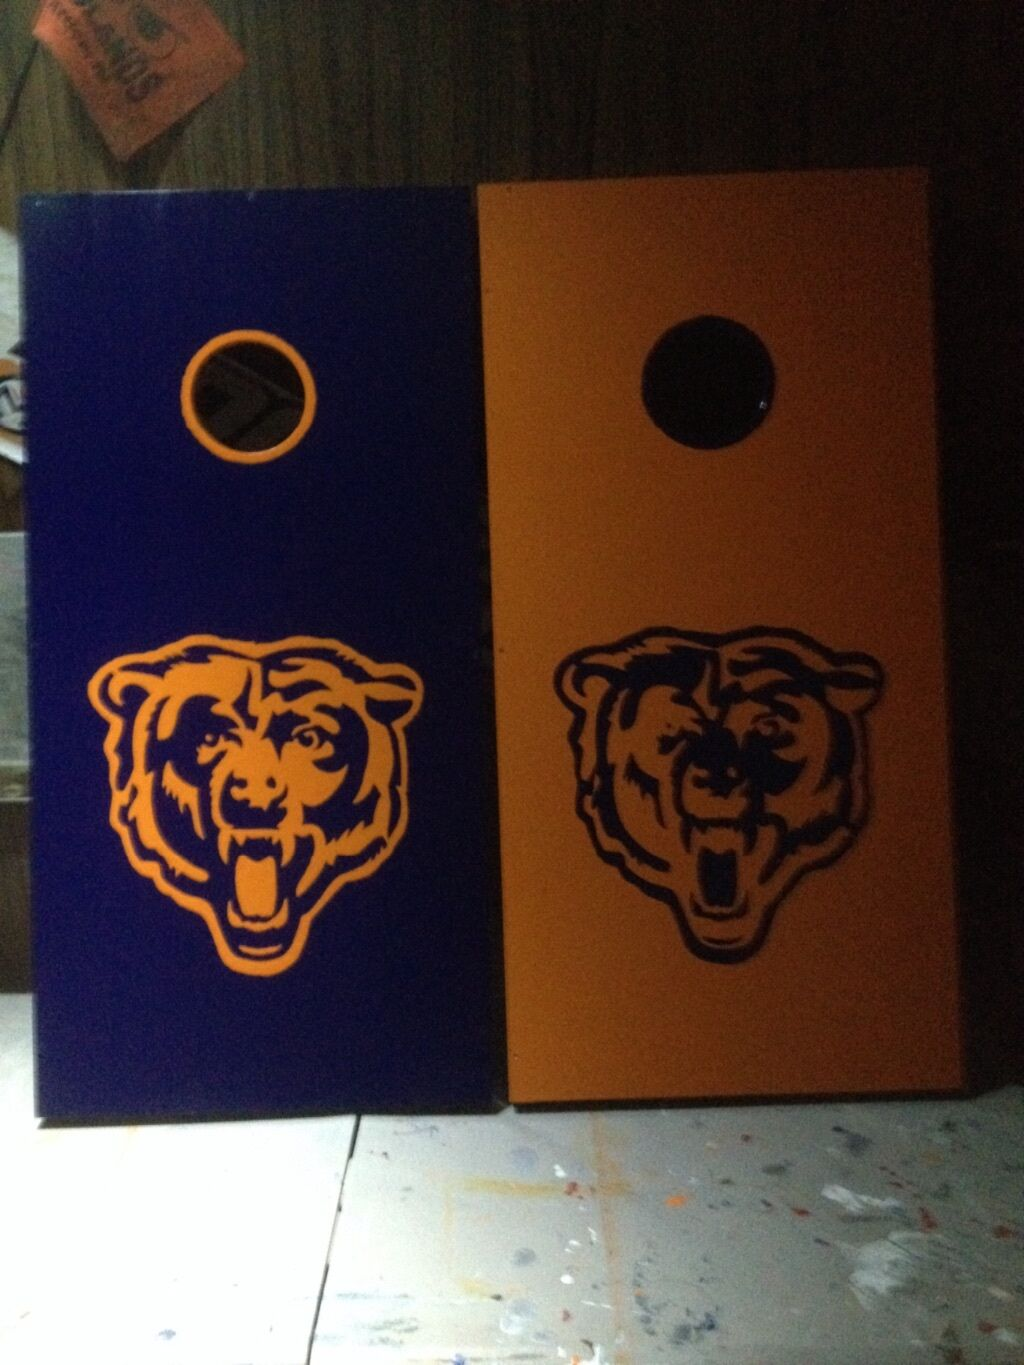 Corn hole boards and bags